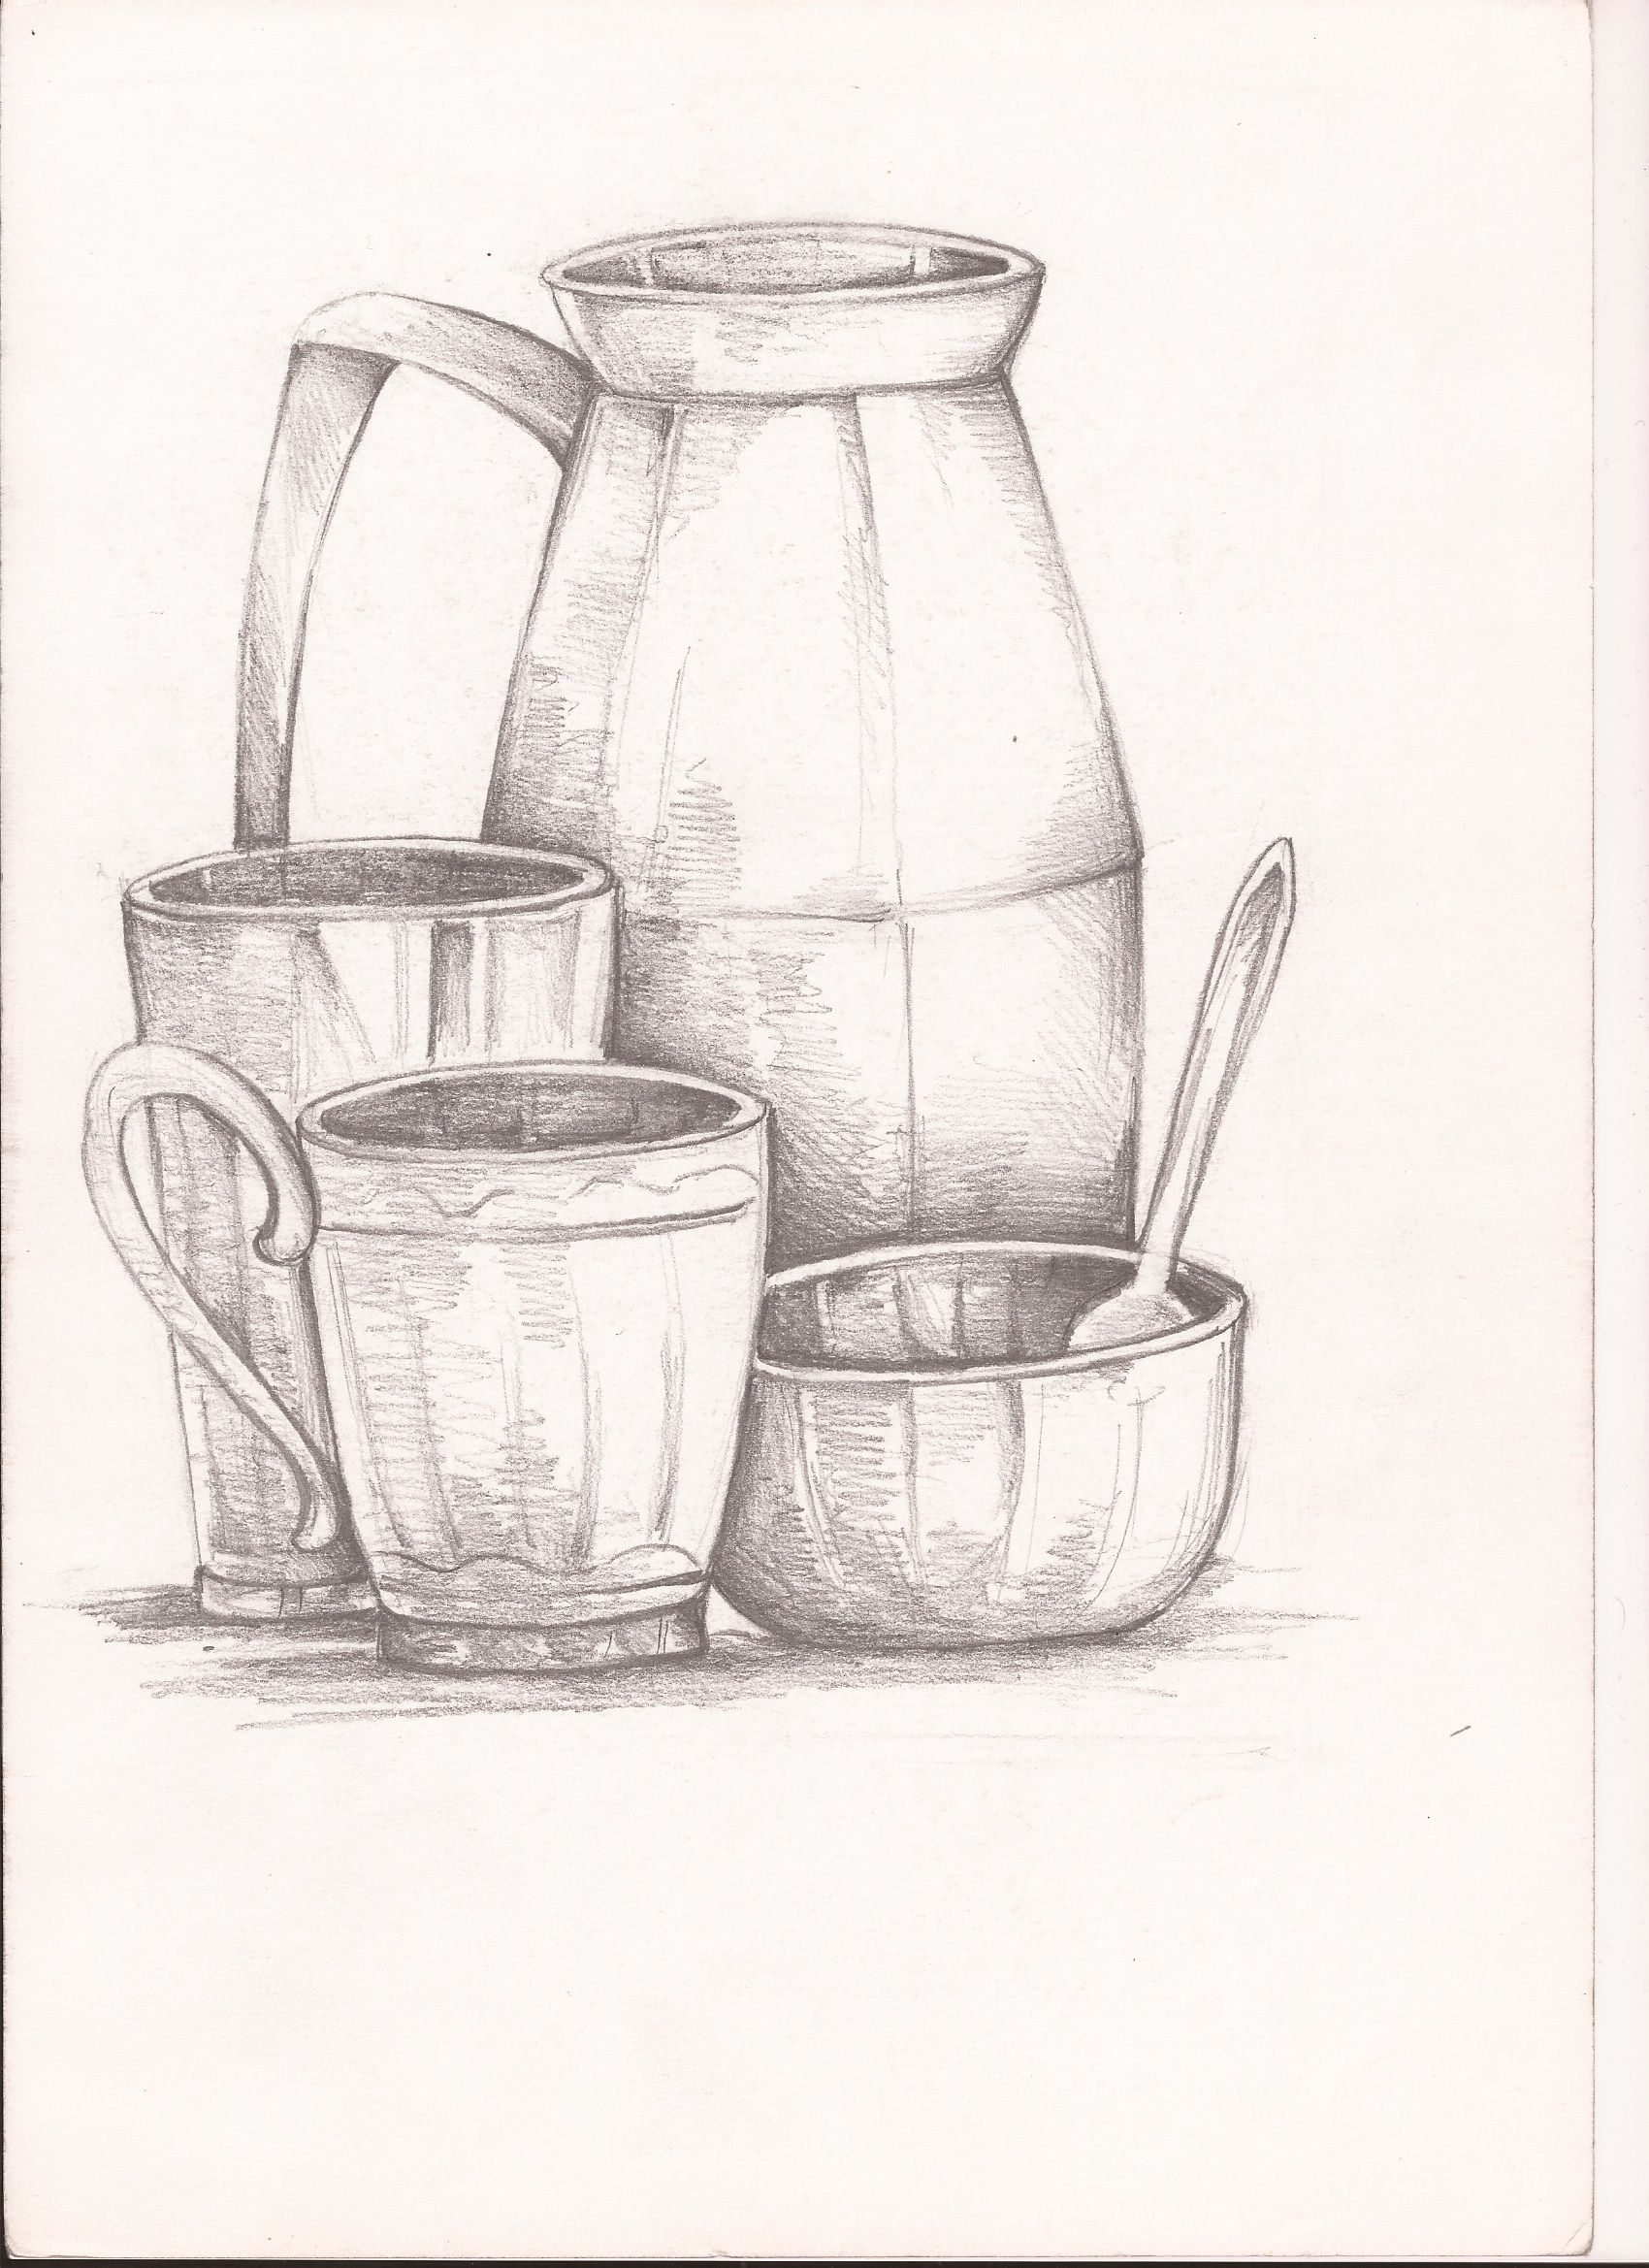 Still Life Sketching With Pencil For Sale If Interested Let Me